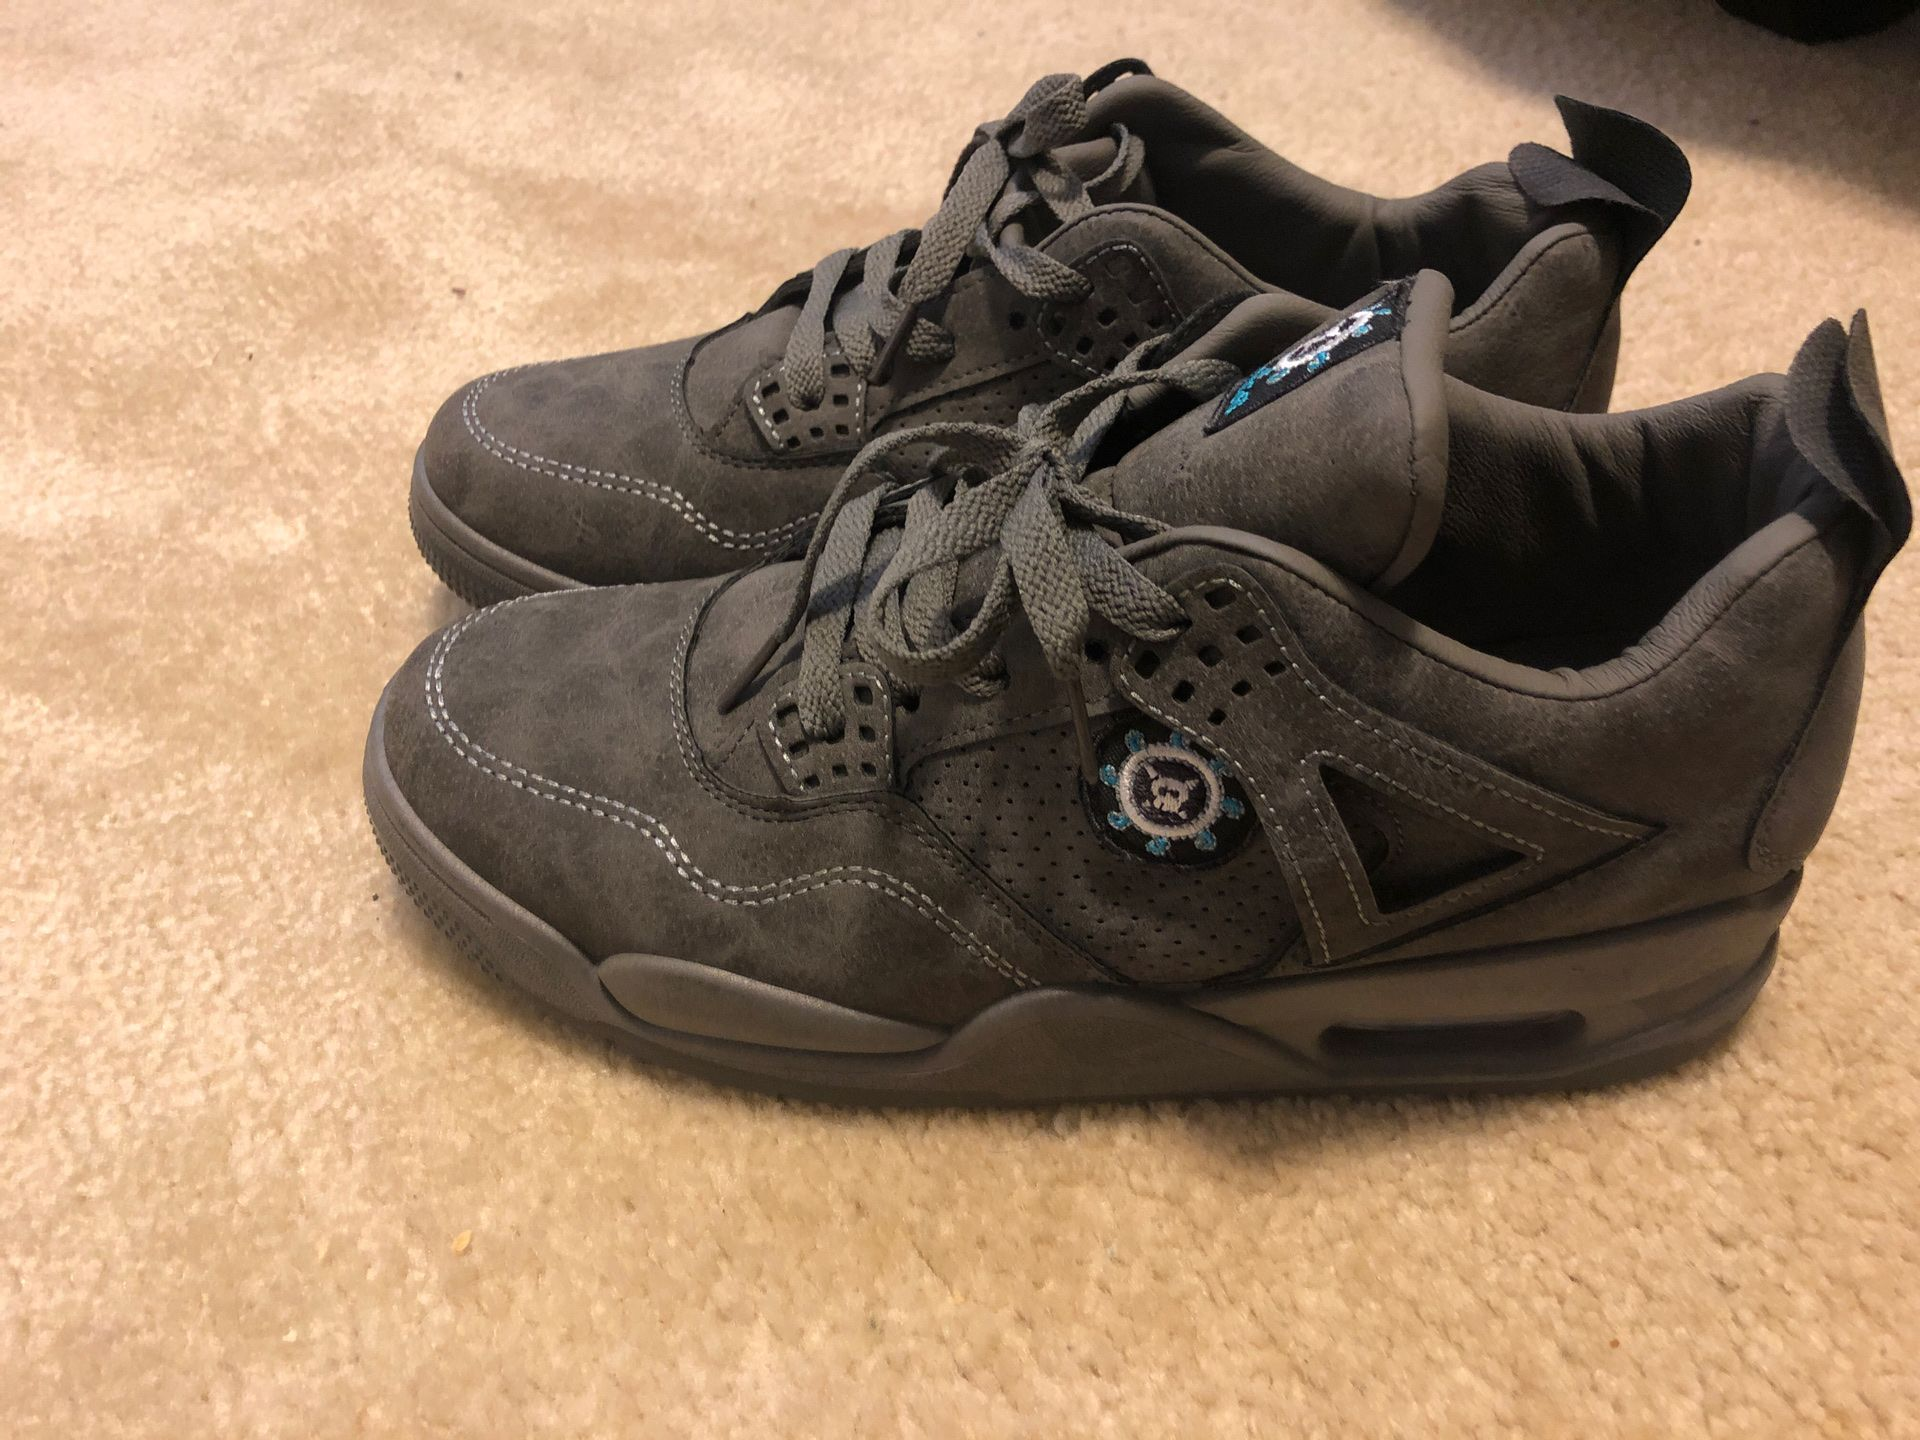 Chaos skate shoes size 10